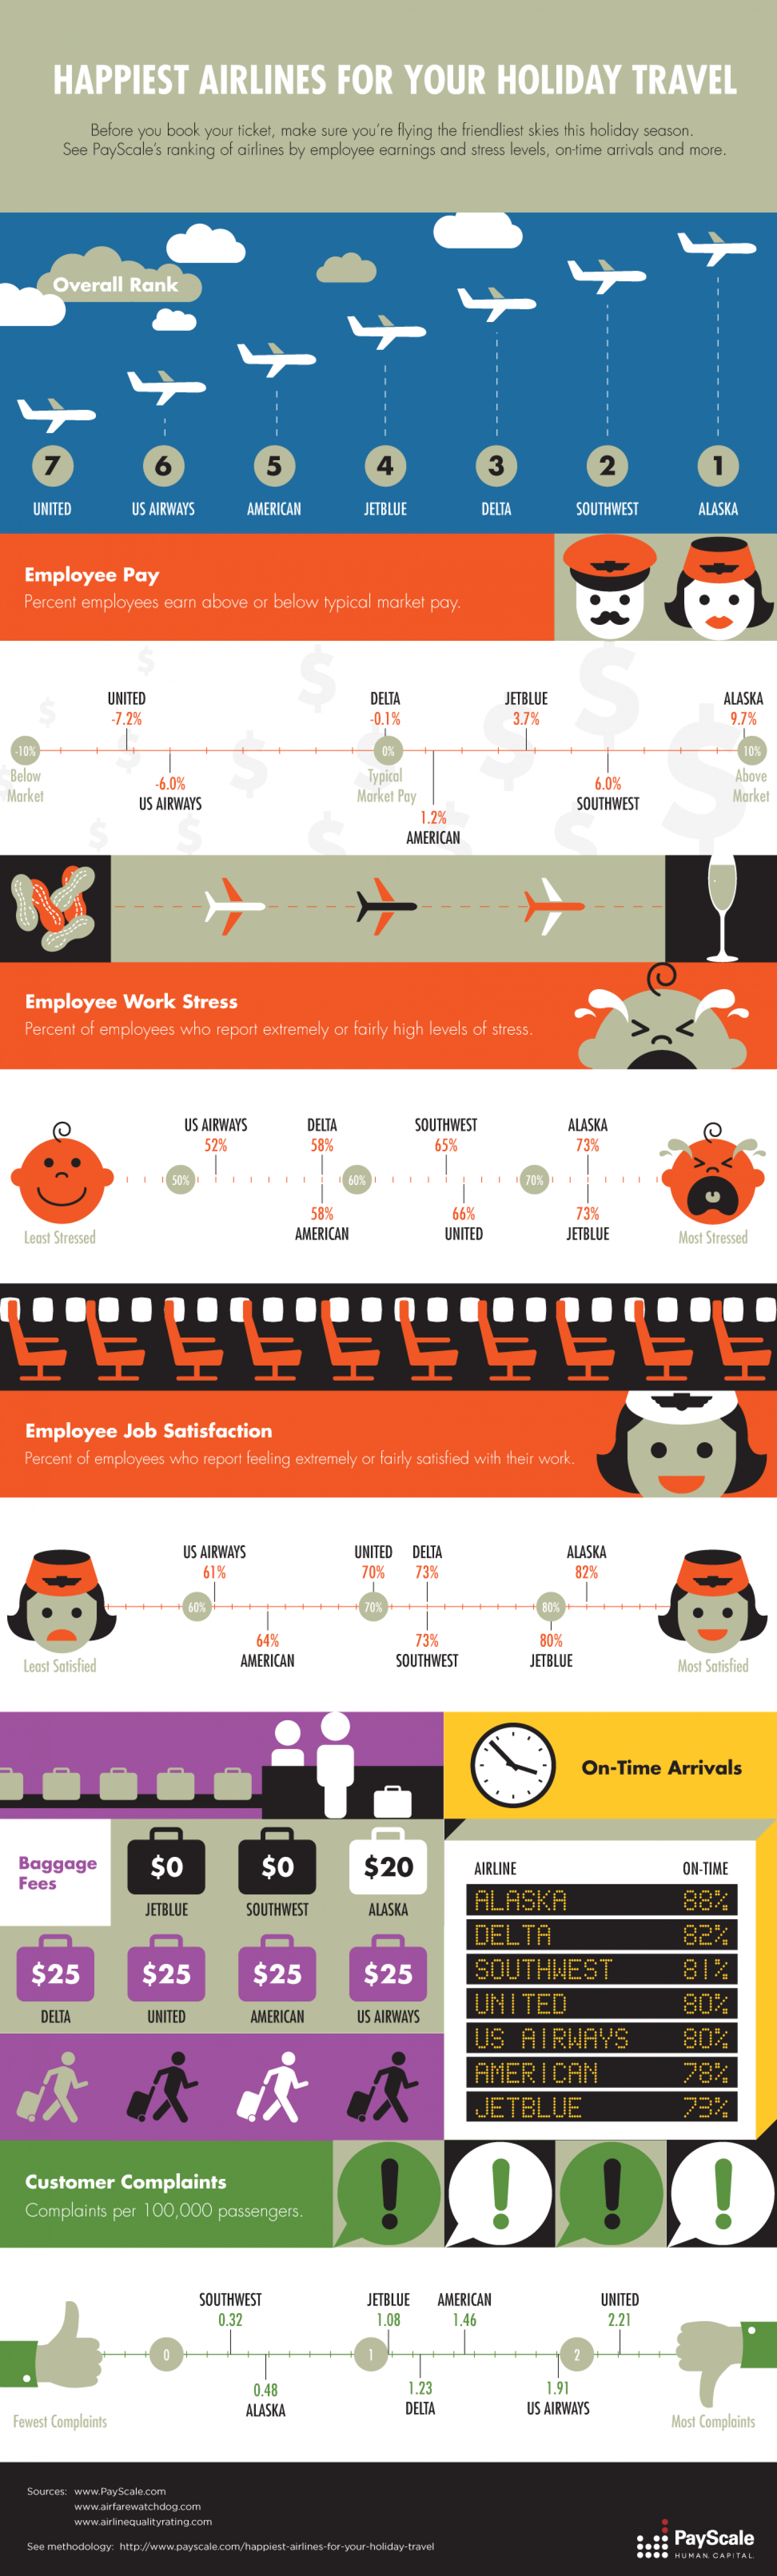 Happiest Airlines for Your Holiday Travel Infographic